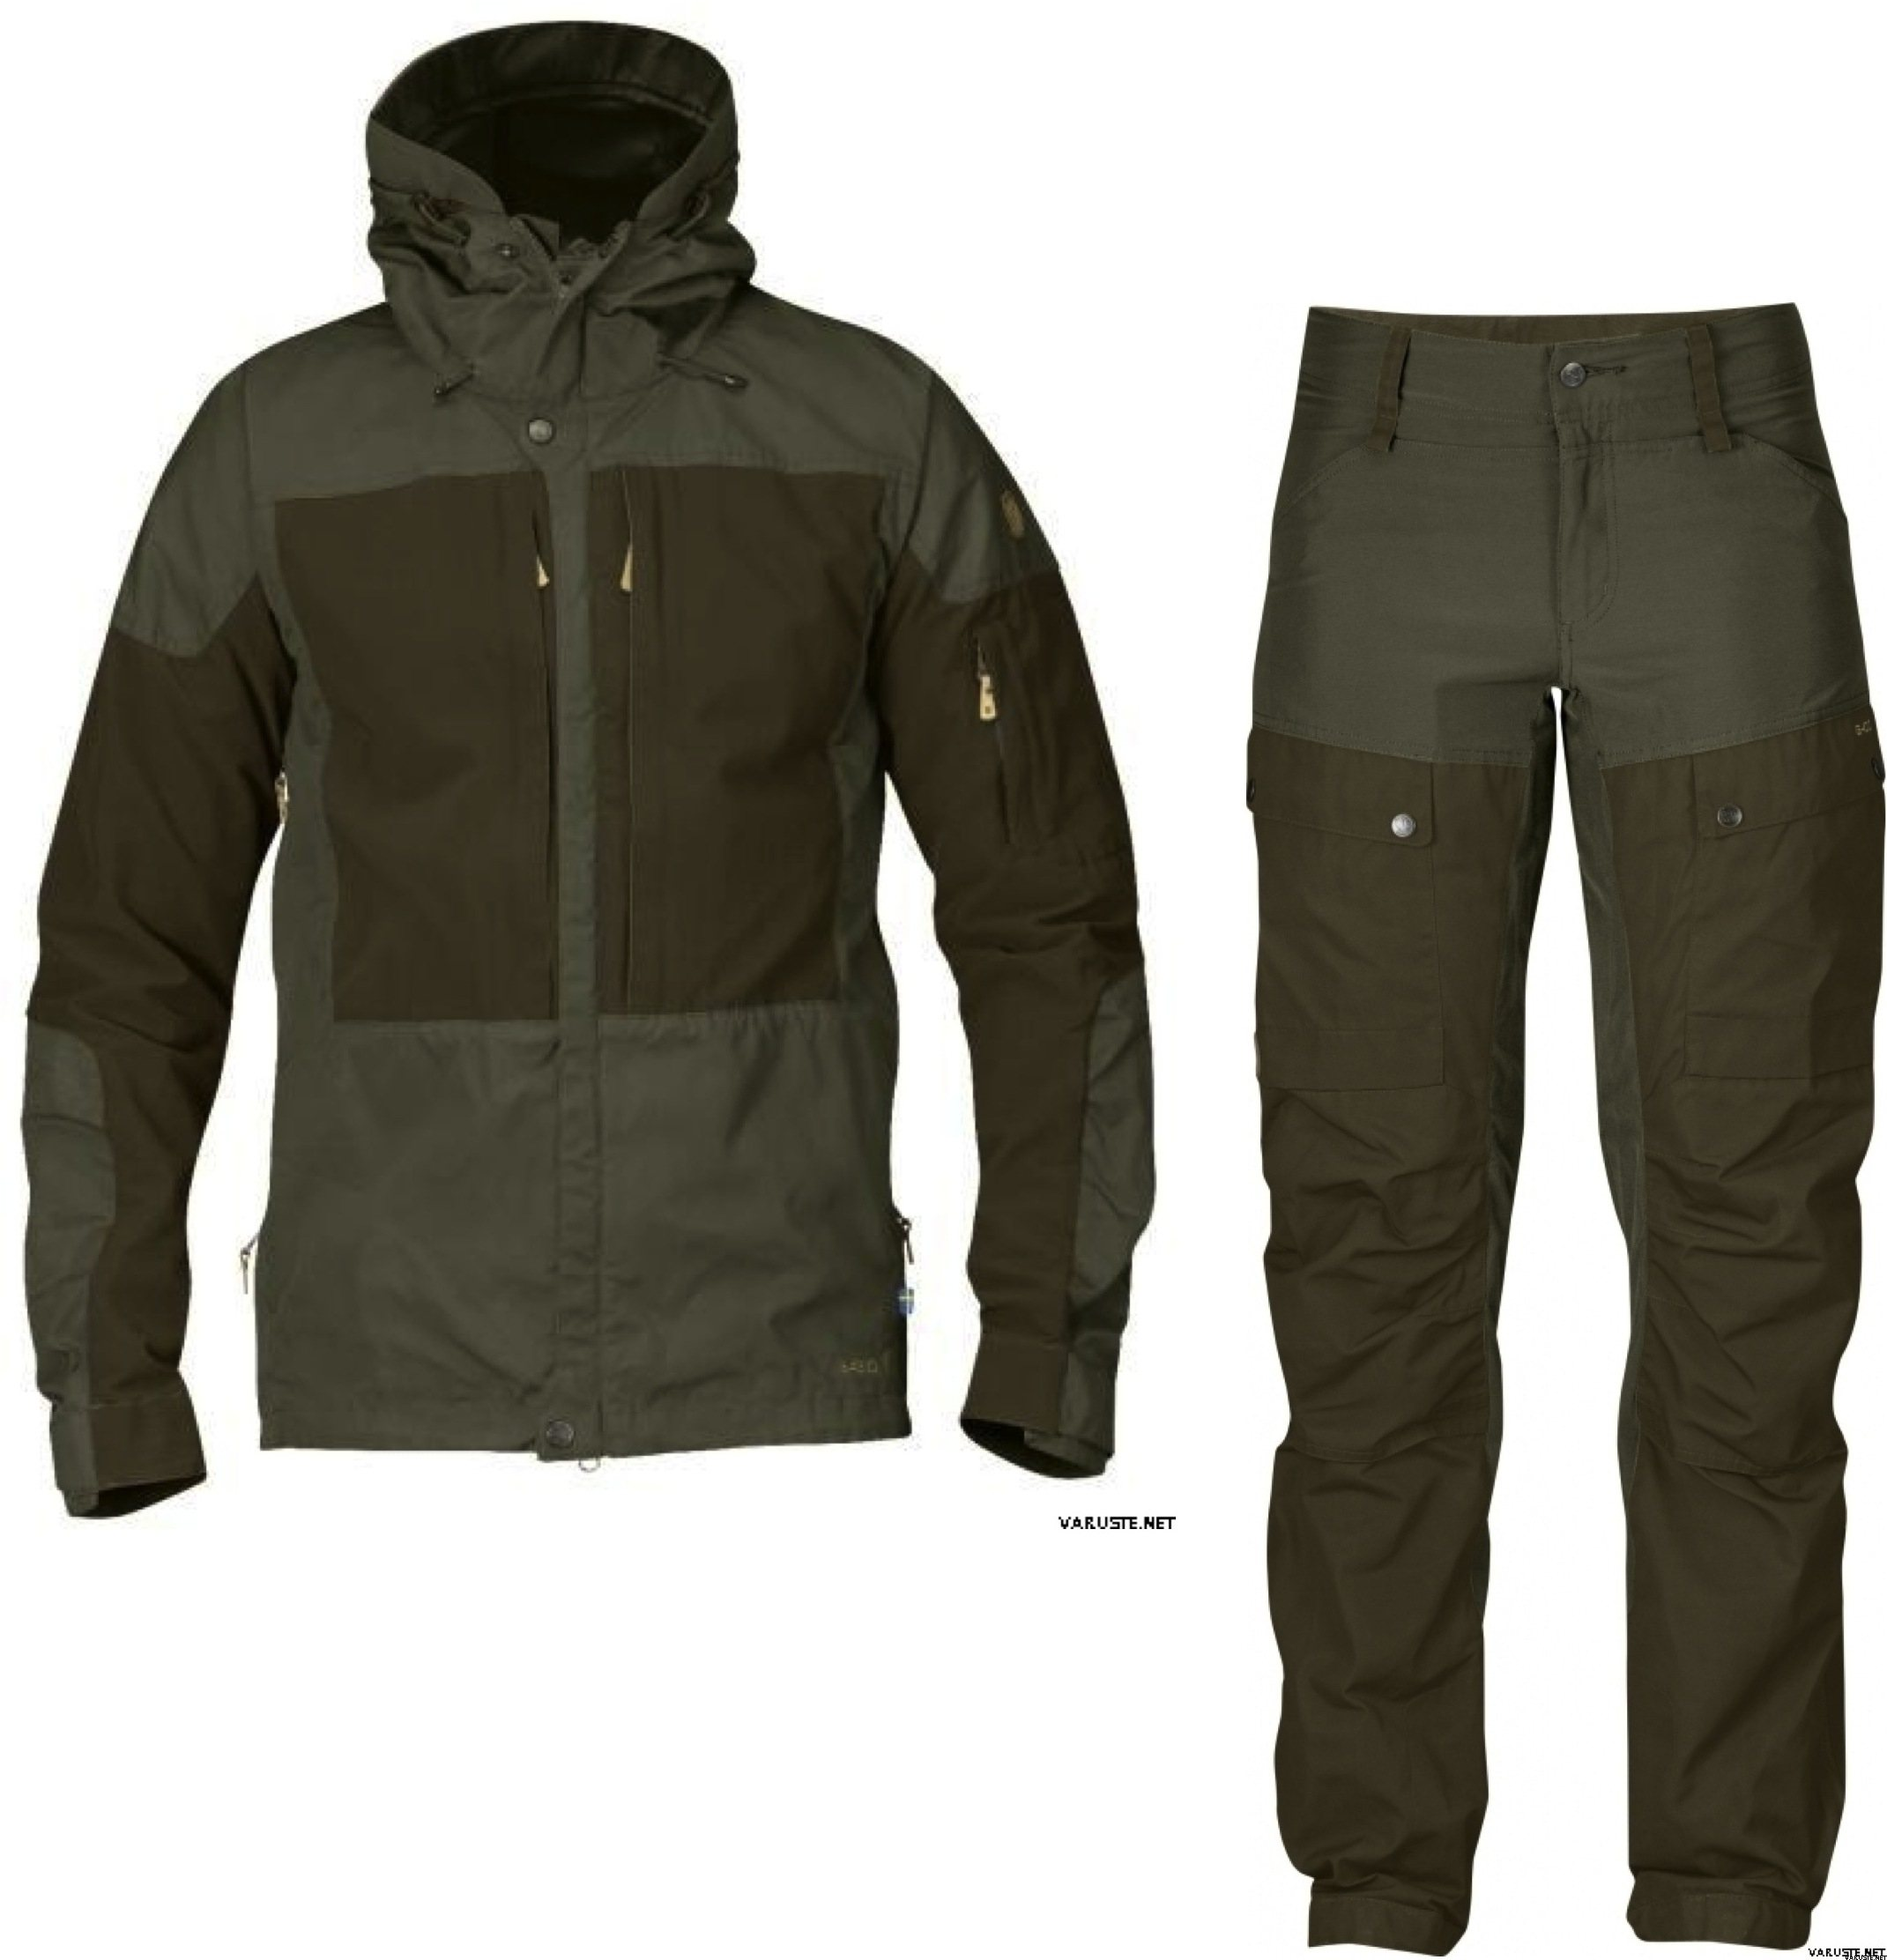 2288cc63dc5ab Fjällräven Keb Jacket & Trousers Regular Women | Outdoor Clothing Sets |  Varuste.net English